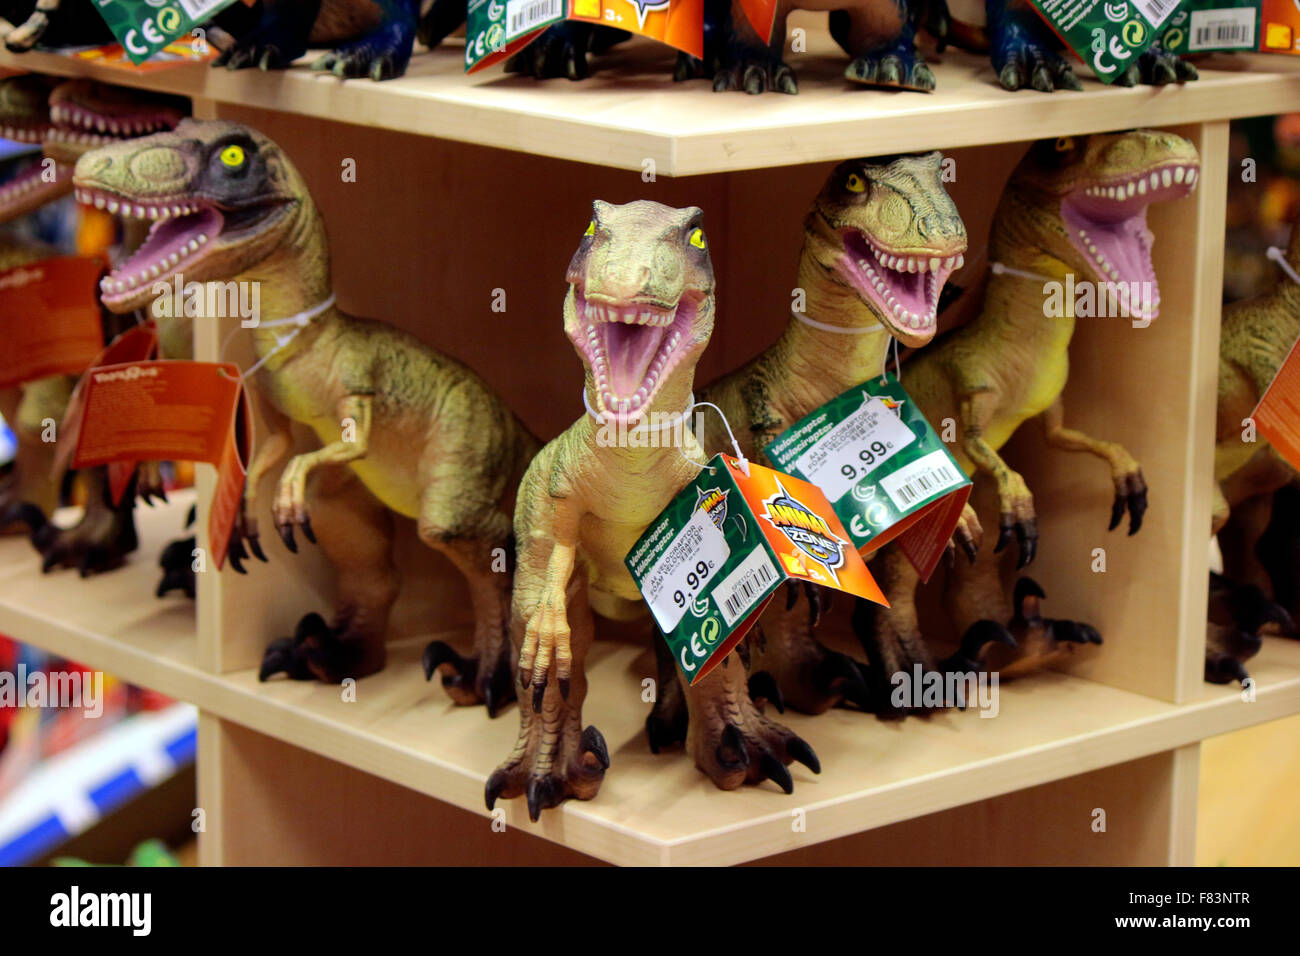 Saurus stock photos saurus stock images alamy tyrannus saurus rex das neue einkaufszentrum mall of berlin am leipziger platz thecheapjerseys